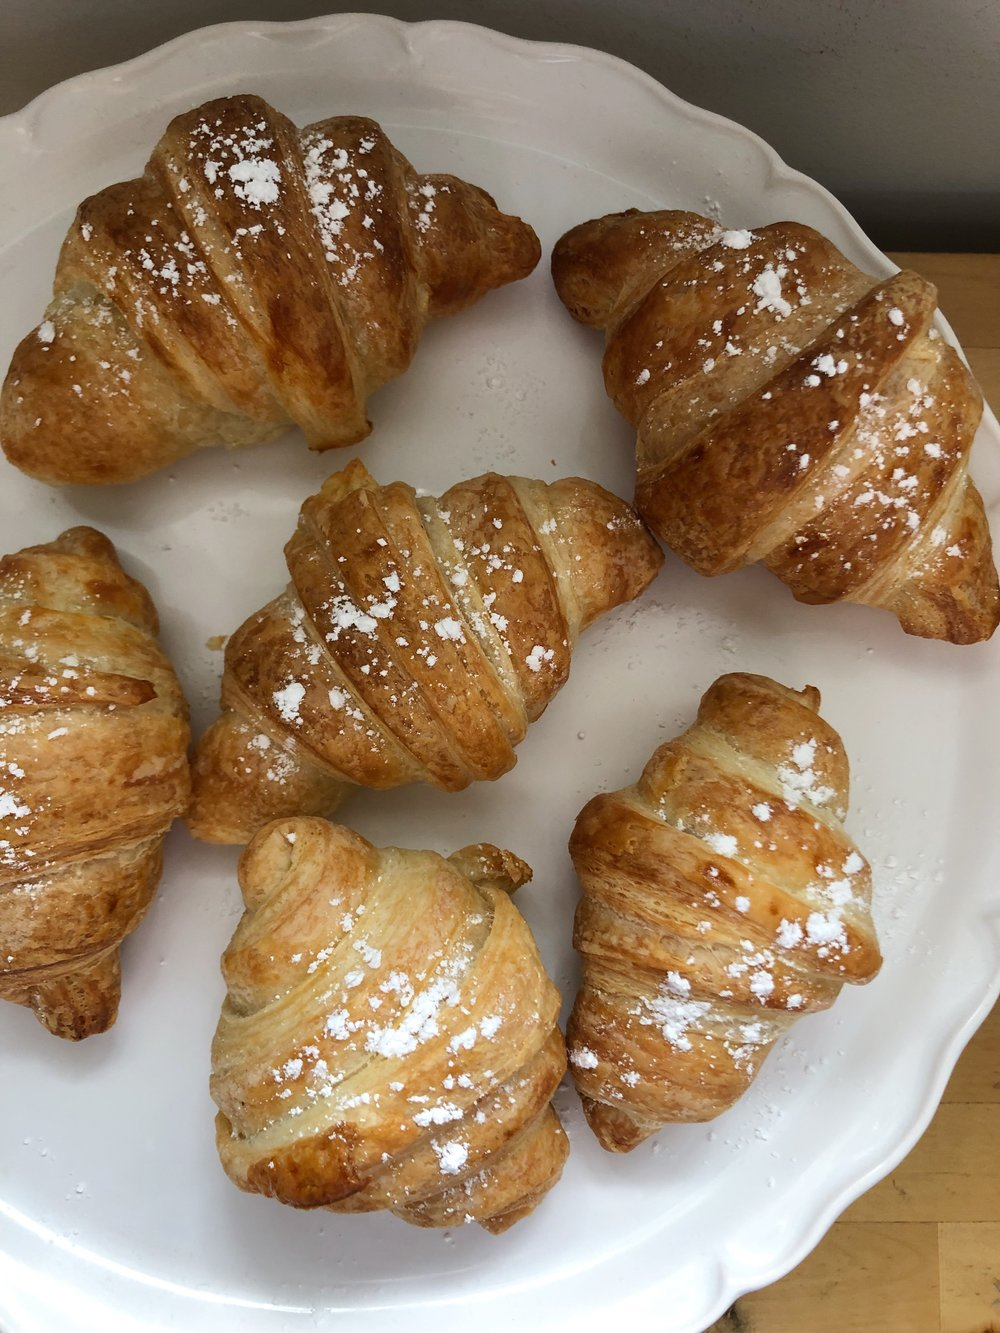 The chocolate croissants we made were to die for!